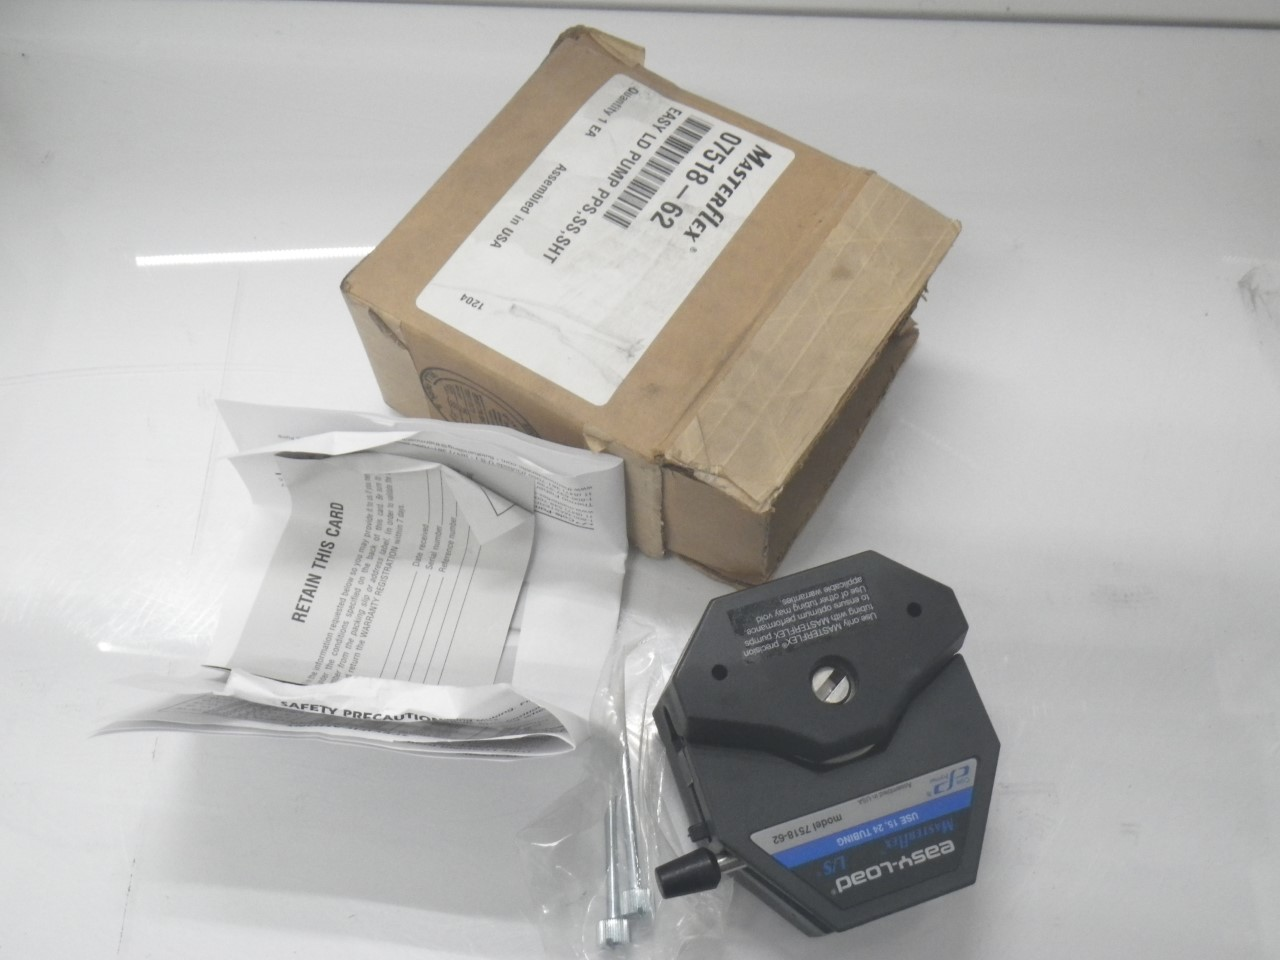 IMGP11207518-62 Cole Parmer Easy-load Masterflex Ls 7518-62 Pump Head (New with Box) (2)